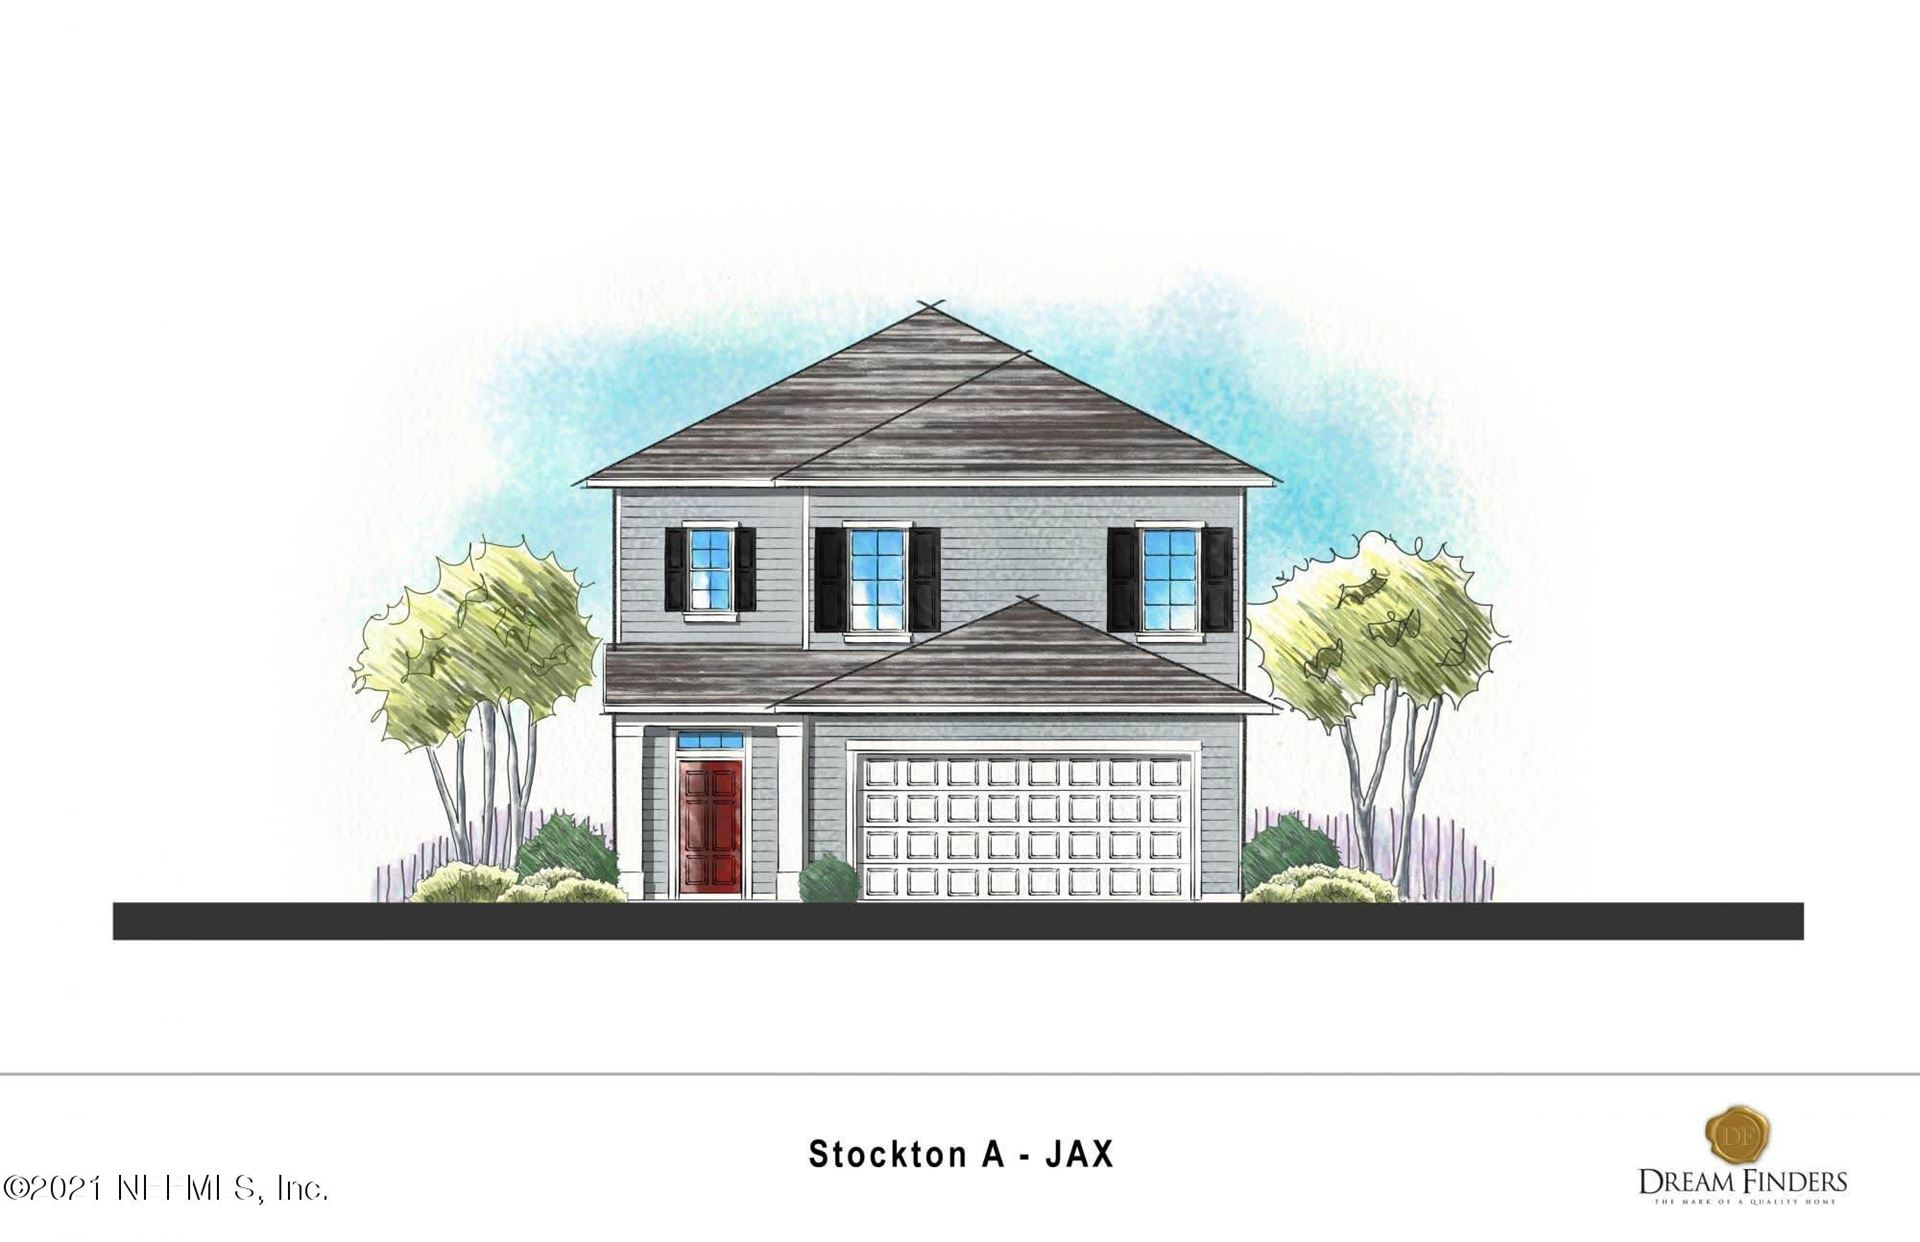 236 HOLLY FOREST DR #Lot No: 133, ST AUGUSTINE, FL 32092 - MLS#: 1091358